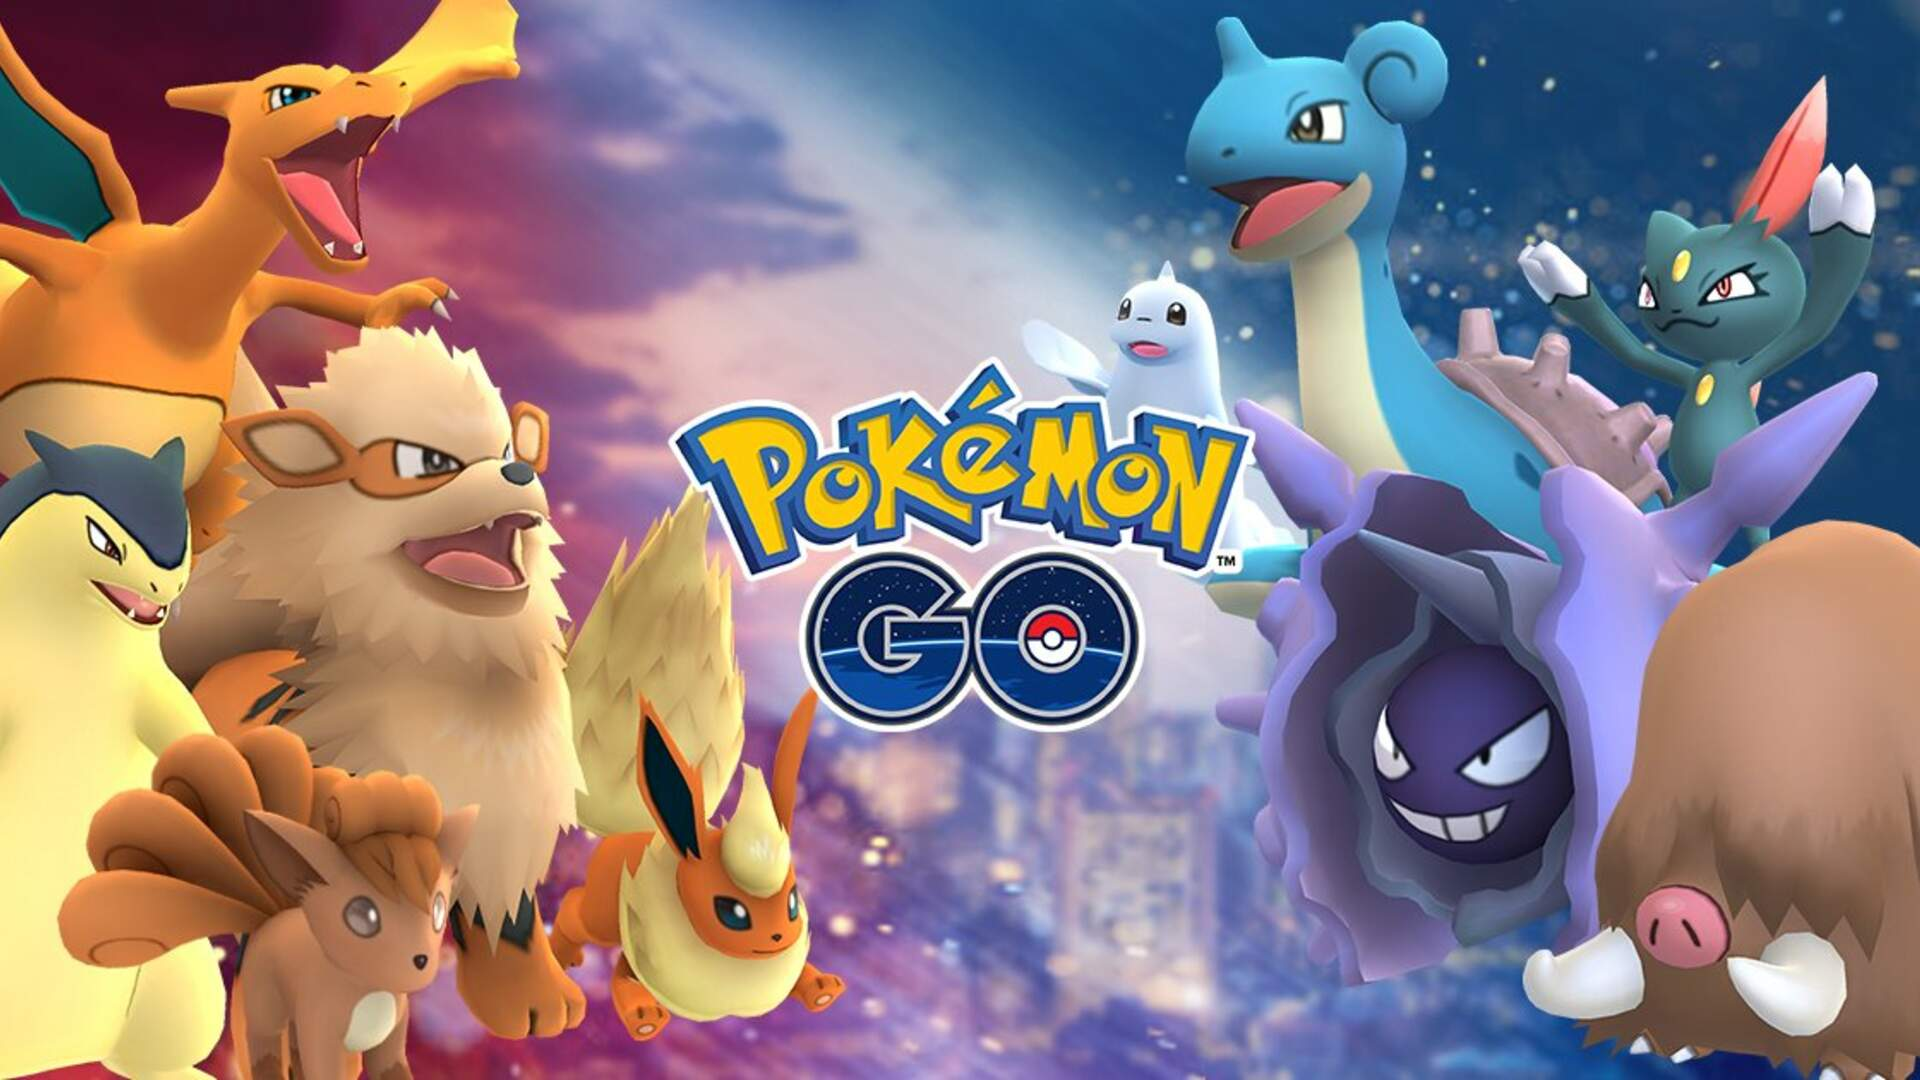 Pokemon GO Fire and Ice Event - (Update: Event Has Ended) Every Fire/Ice Pokemon, New Content, Locations - Everything We Know